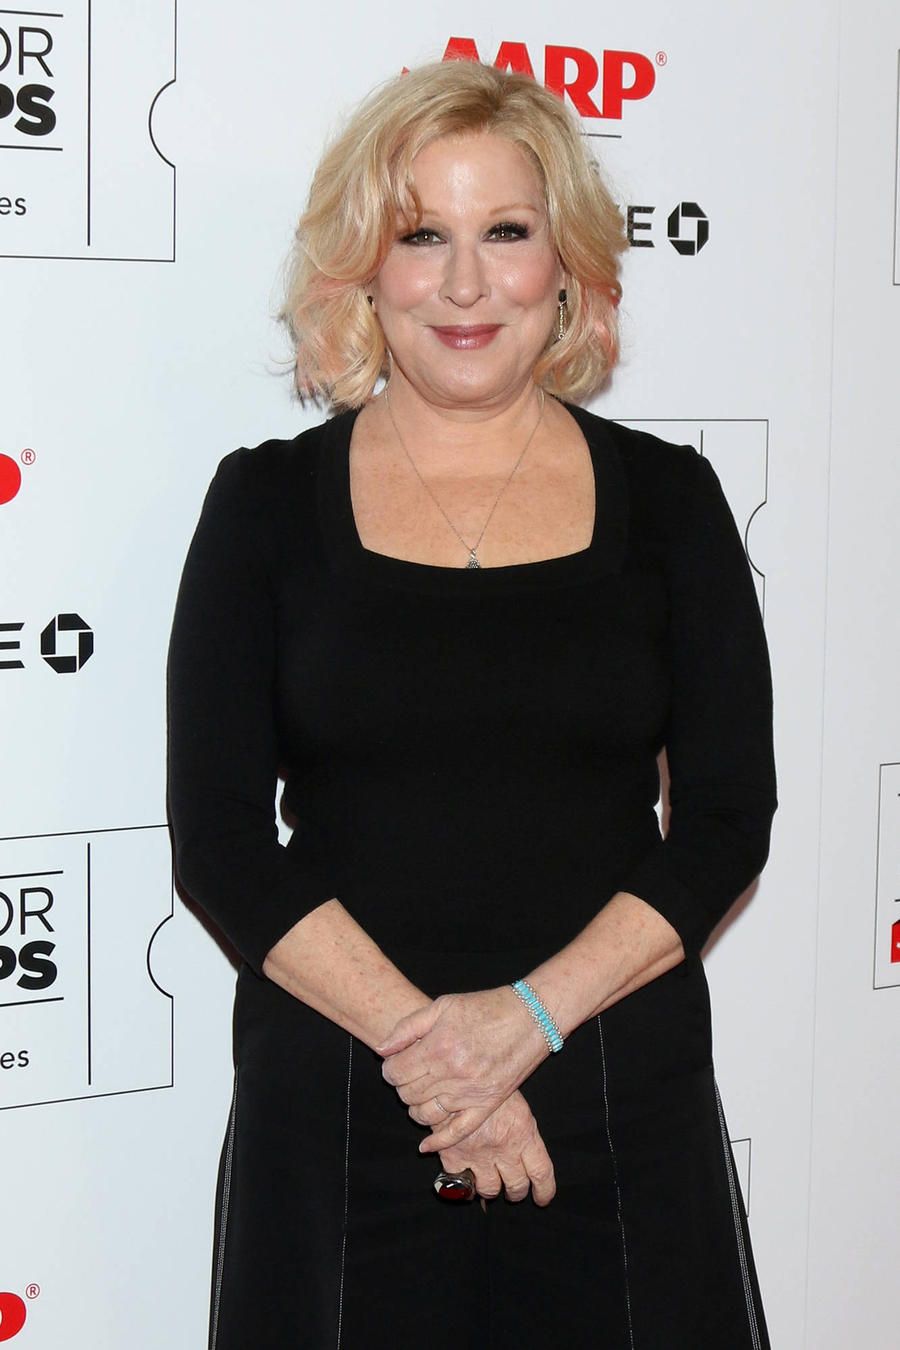 Bette Midler Pokes Fun At Justin Bieber's Latest Nude Snap